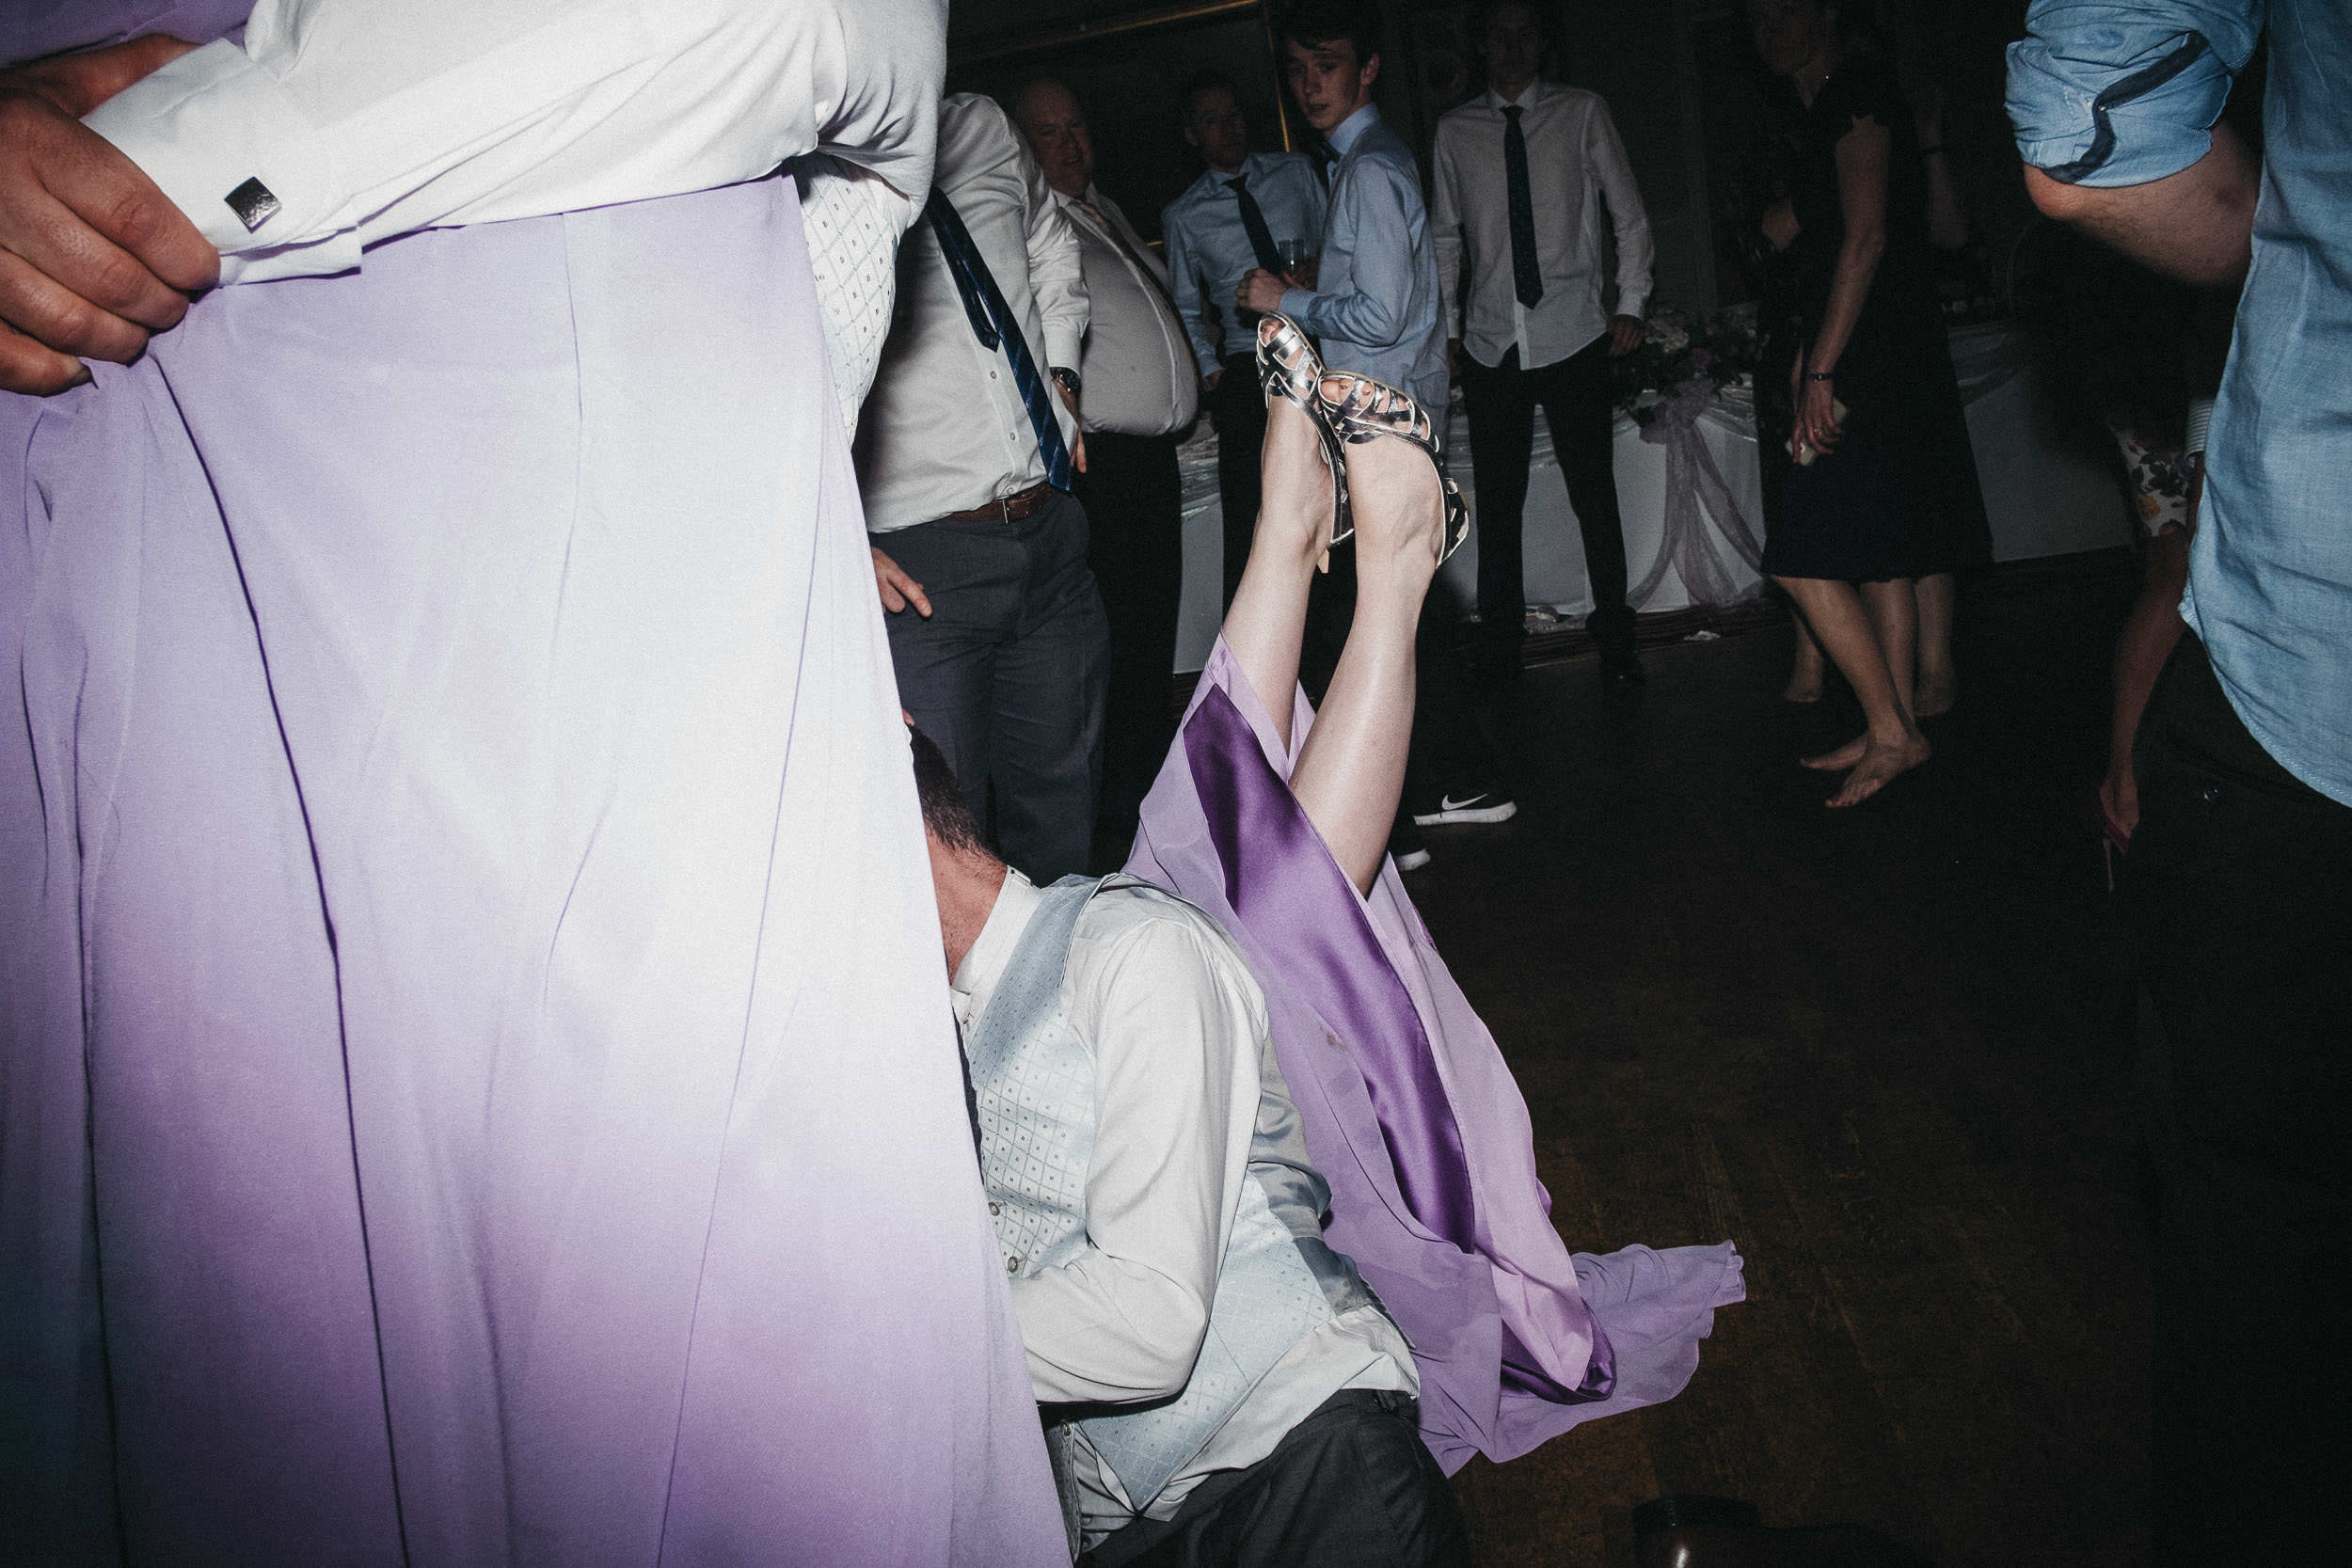 Bridesmaid falls on floor and legs shoot into the air